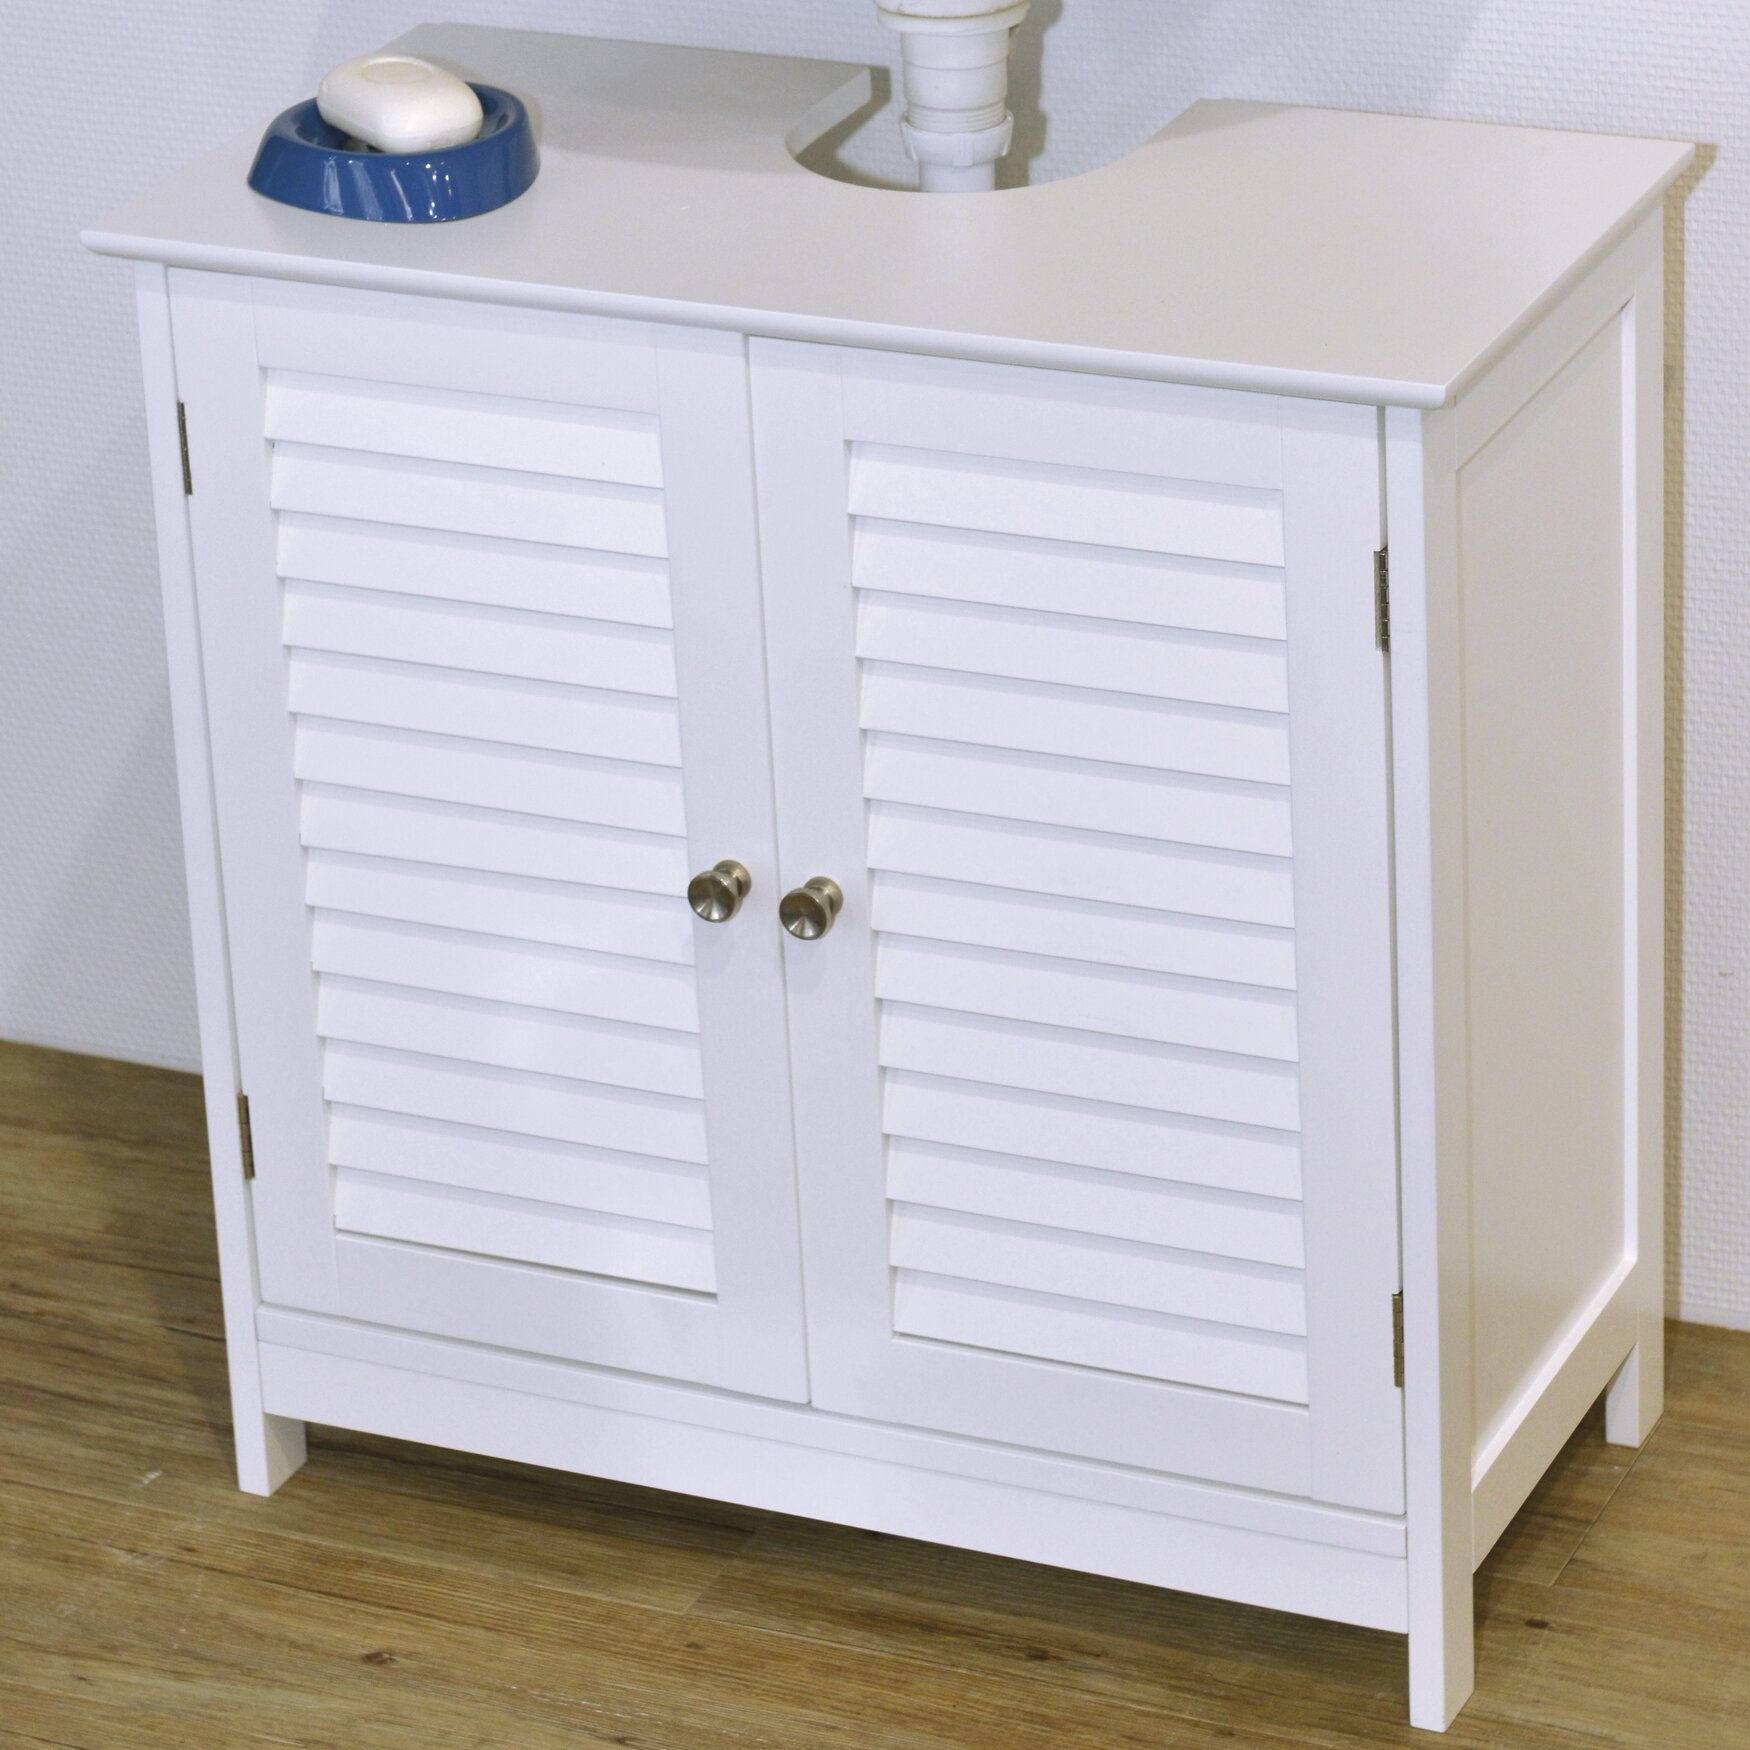 Evideco florence 23 6 x 23 6 freestanding cabinet - Under sink bathroom storage cabinet ...